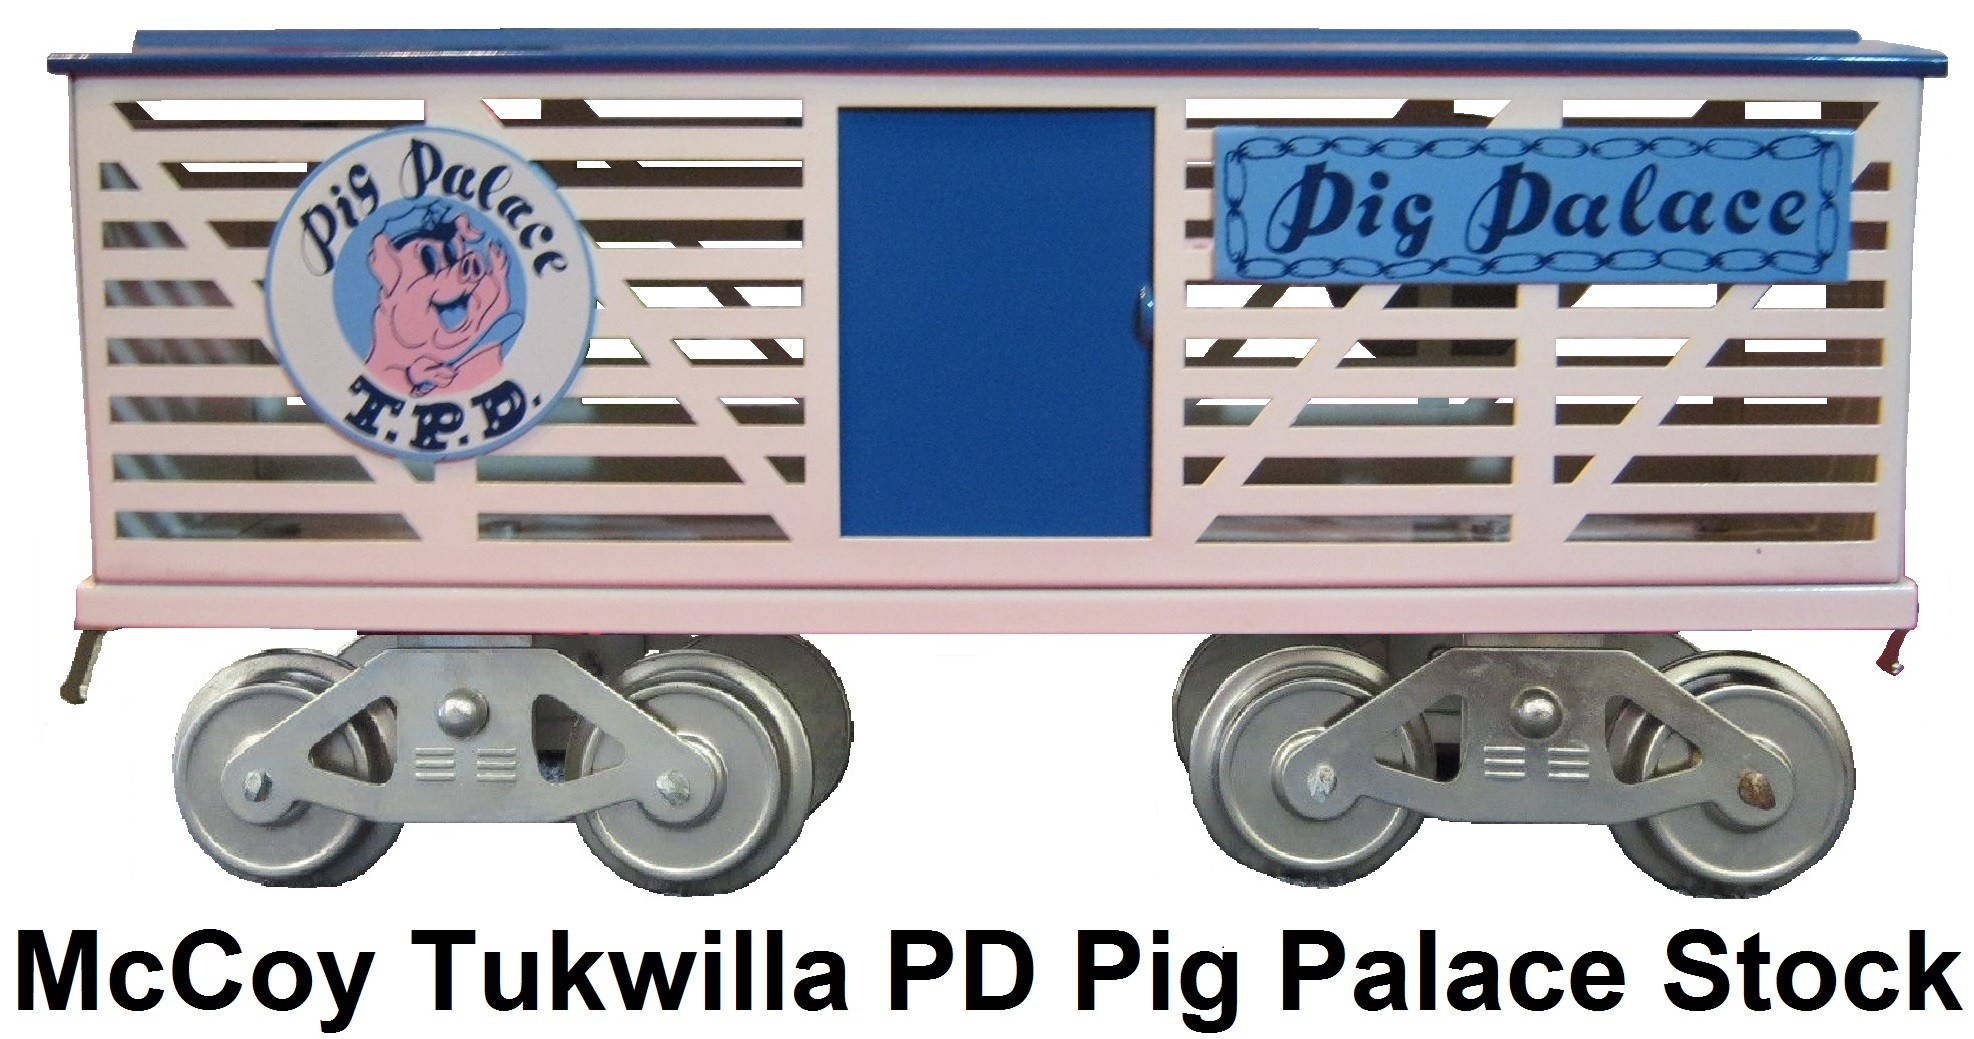 McCoy Tukwilla Police Department Pig Palace stock car